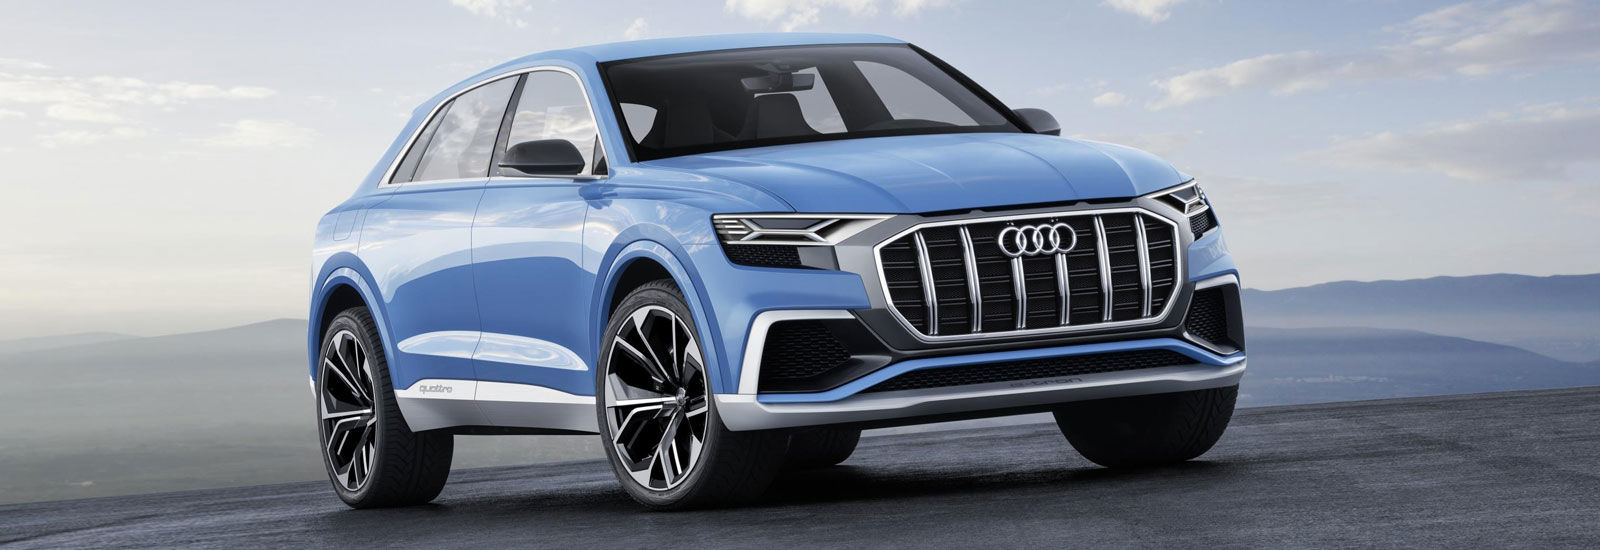 Awesome Audi Q8 2017 Price Specs And Release Date  Carwow